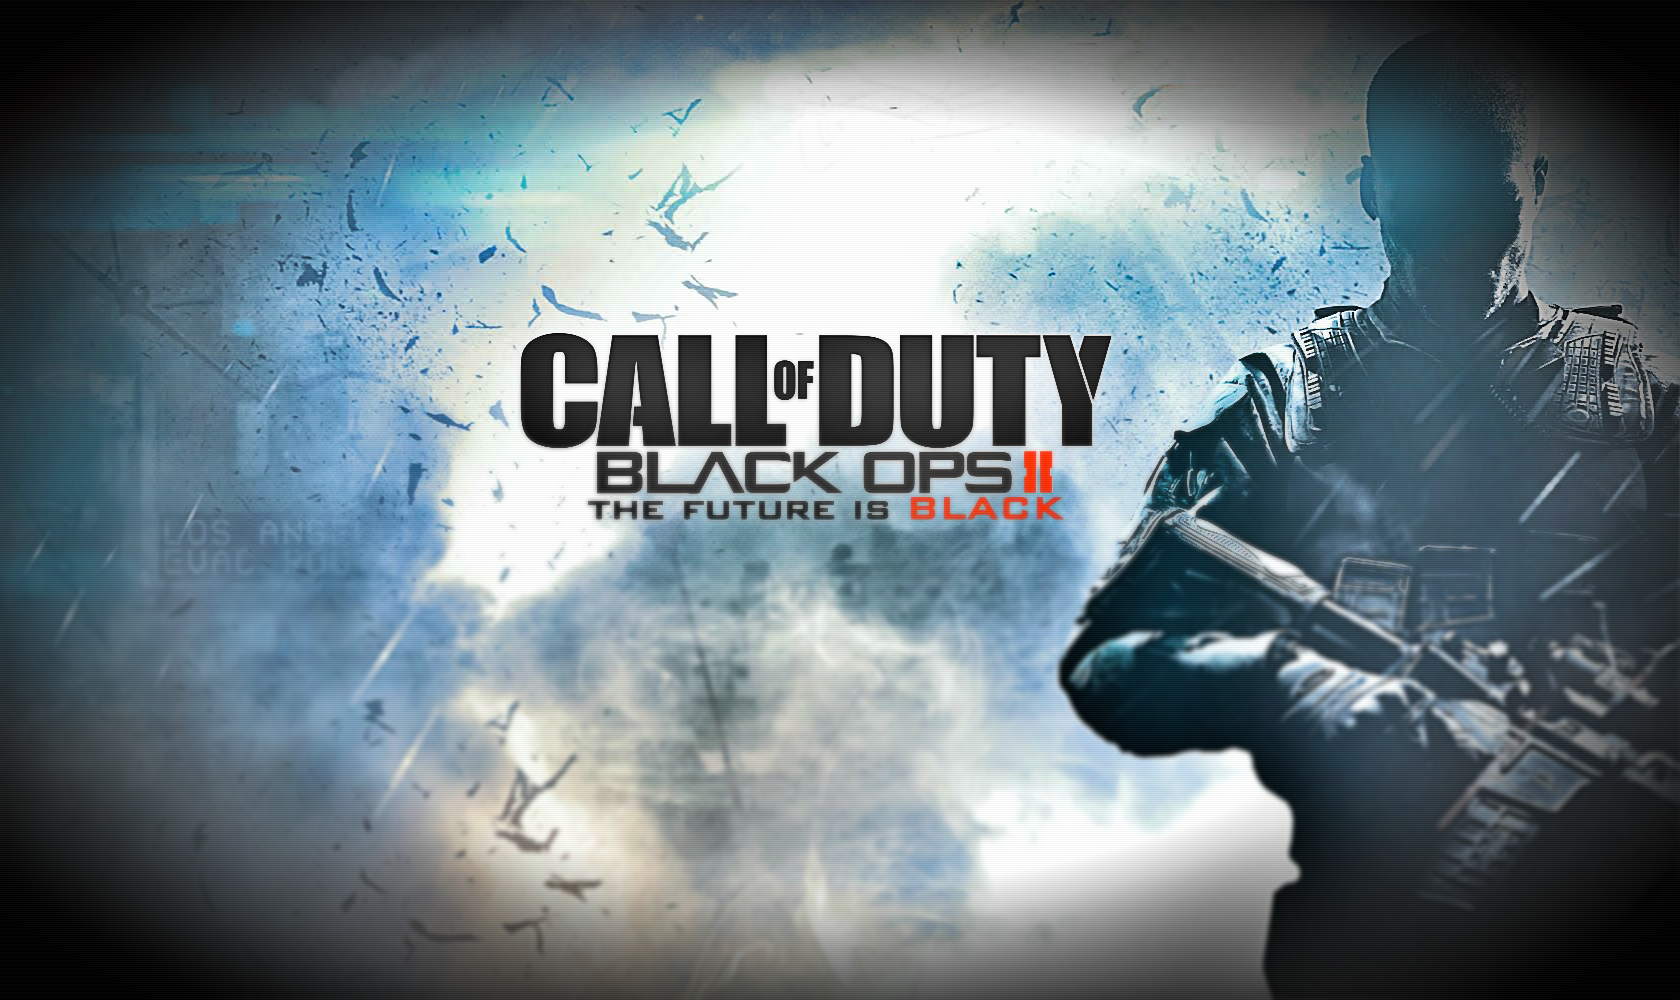 http://image.jeuxvideo.com/downloads/fonds-ecrans-wallpaper/00012718/call-of-duty-black-ops-ii-33288-wp.jpg